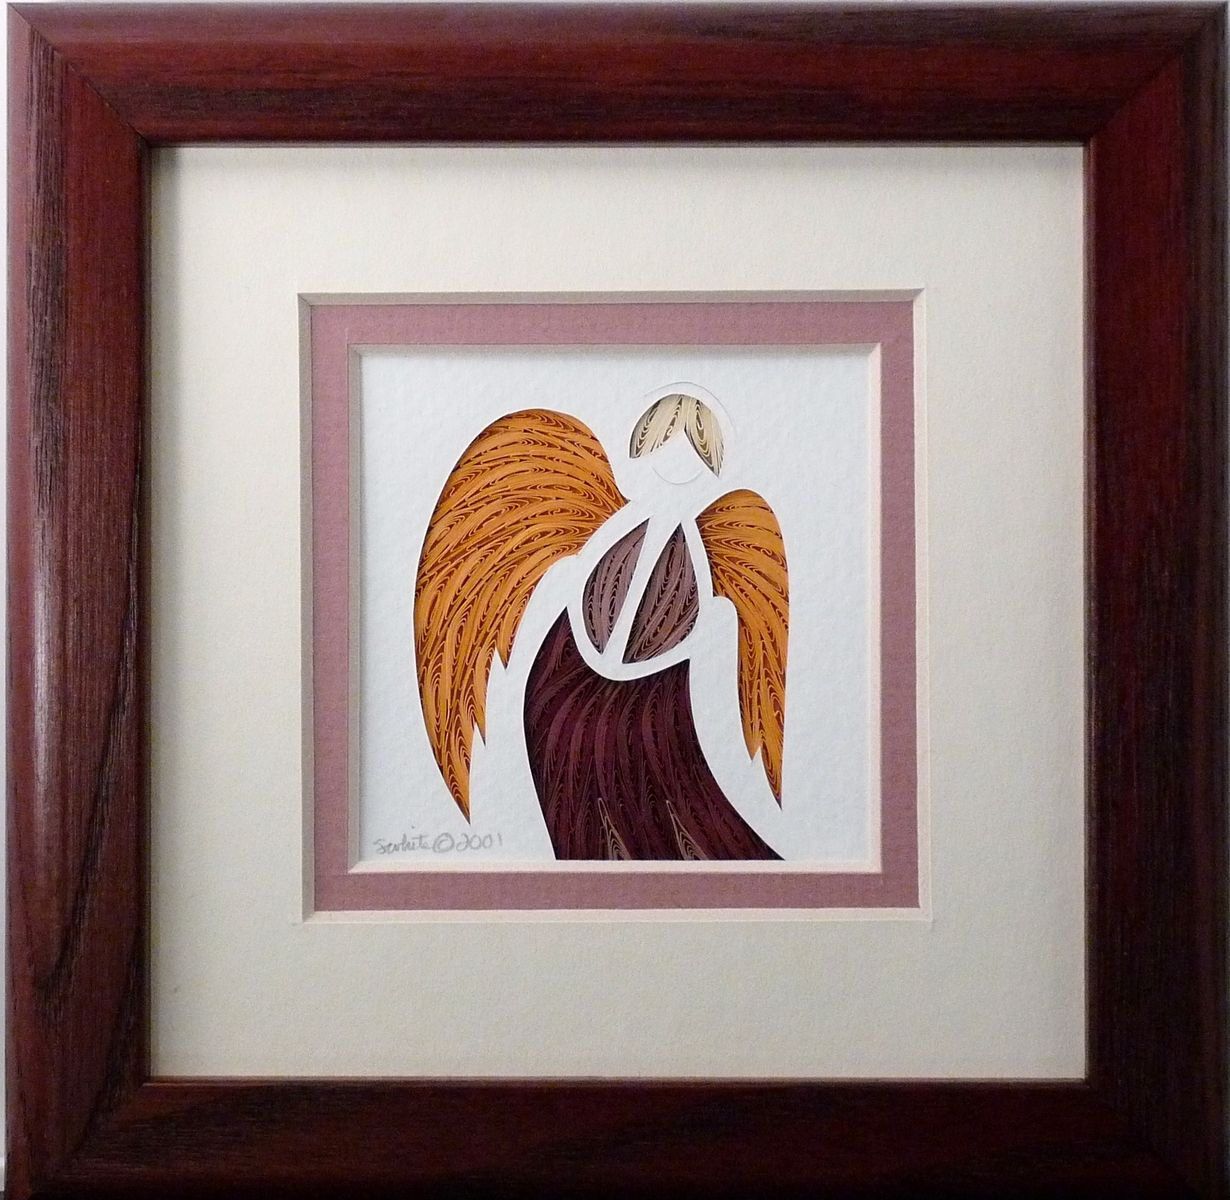 Buy A Custom Made Quilled Guardian Angel Wall Art Framed Made To